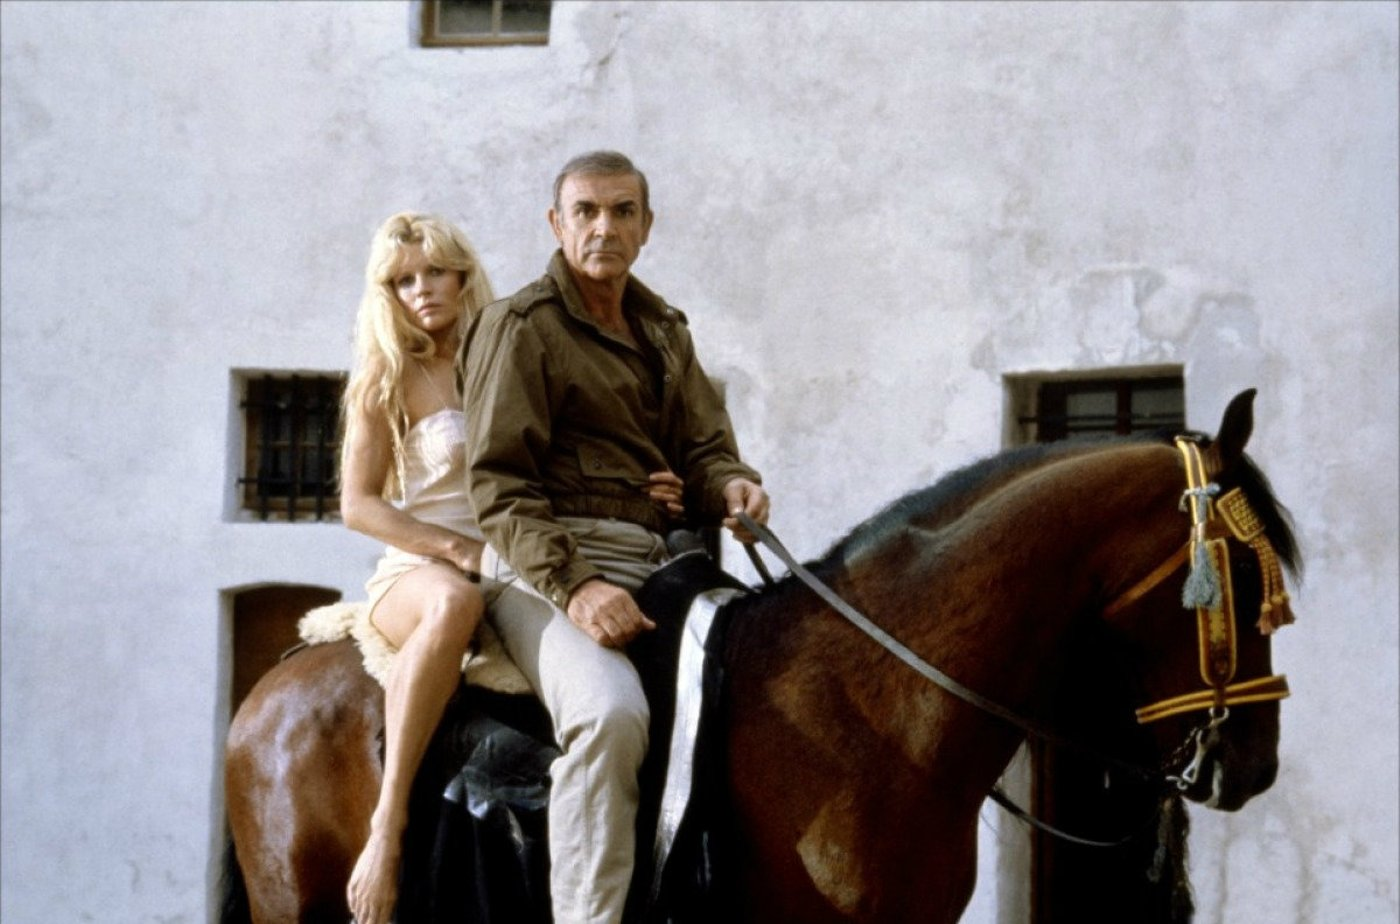 James Bond (Sean Connery) and Domino (Kim Basinger) escape on horseback in Never Say Never Again (1983)